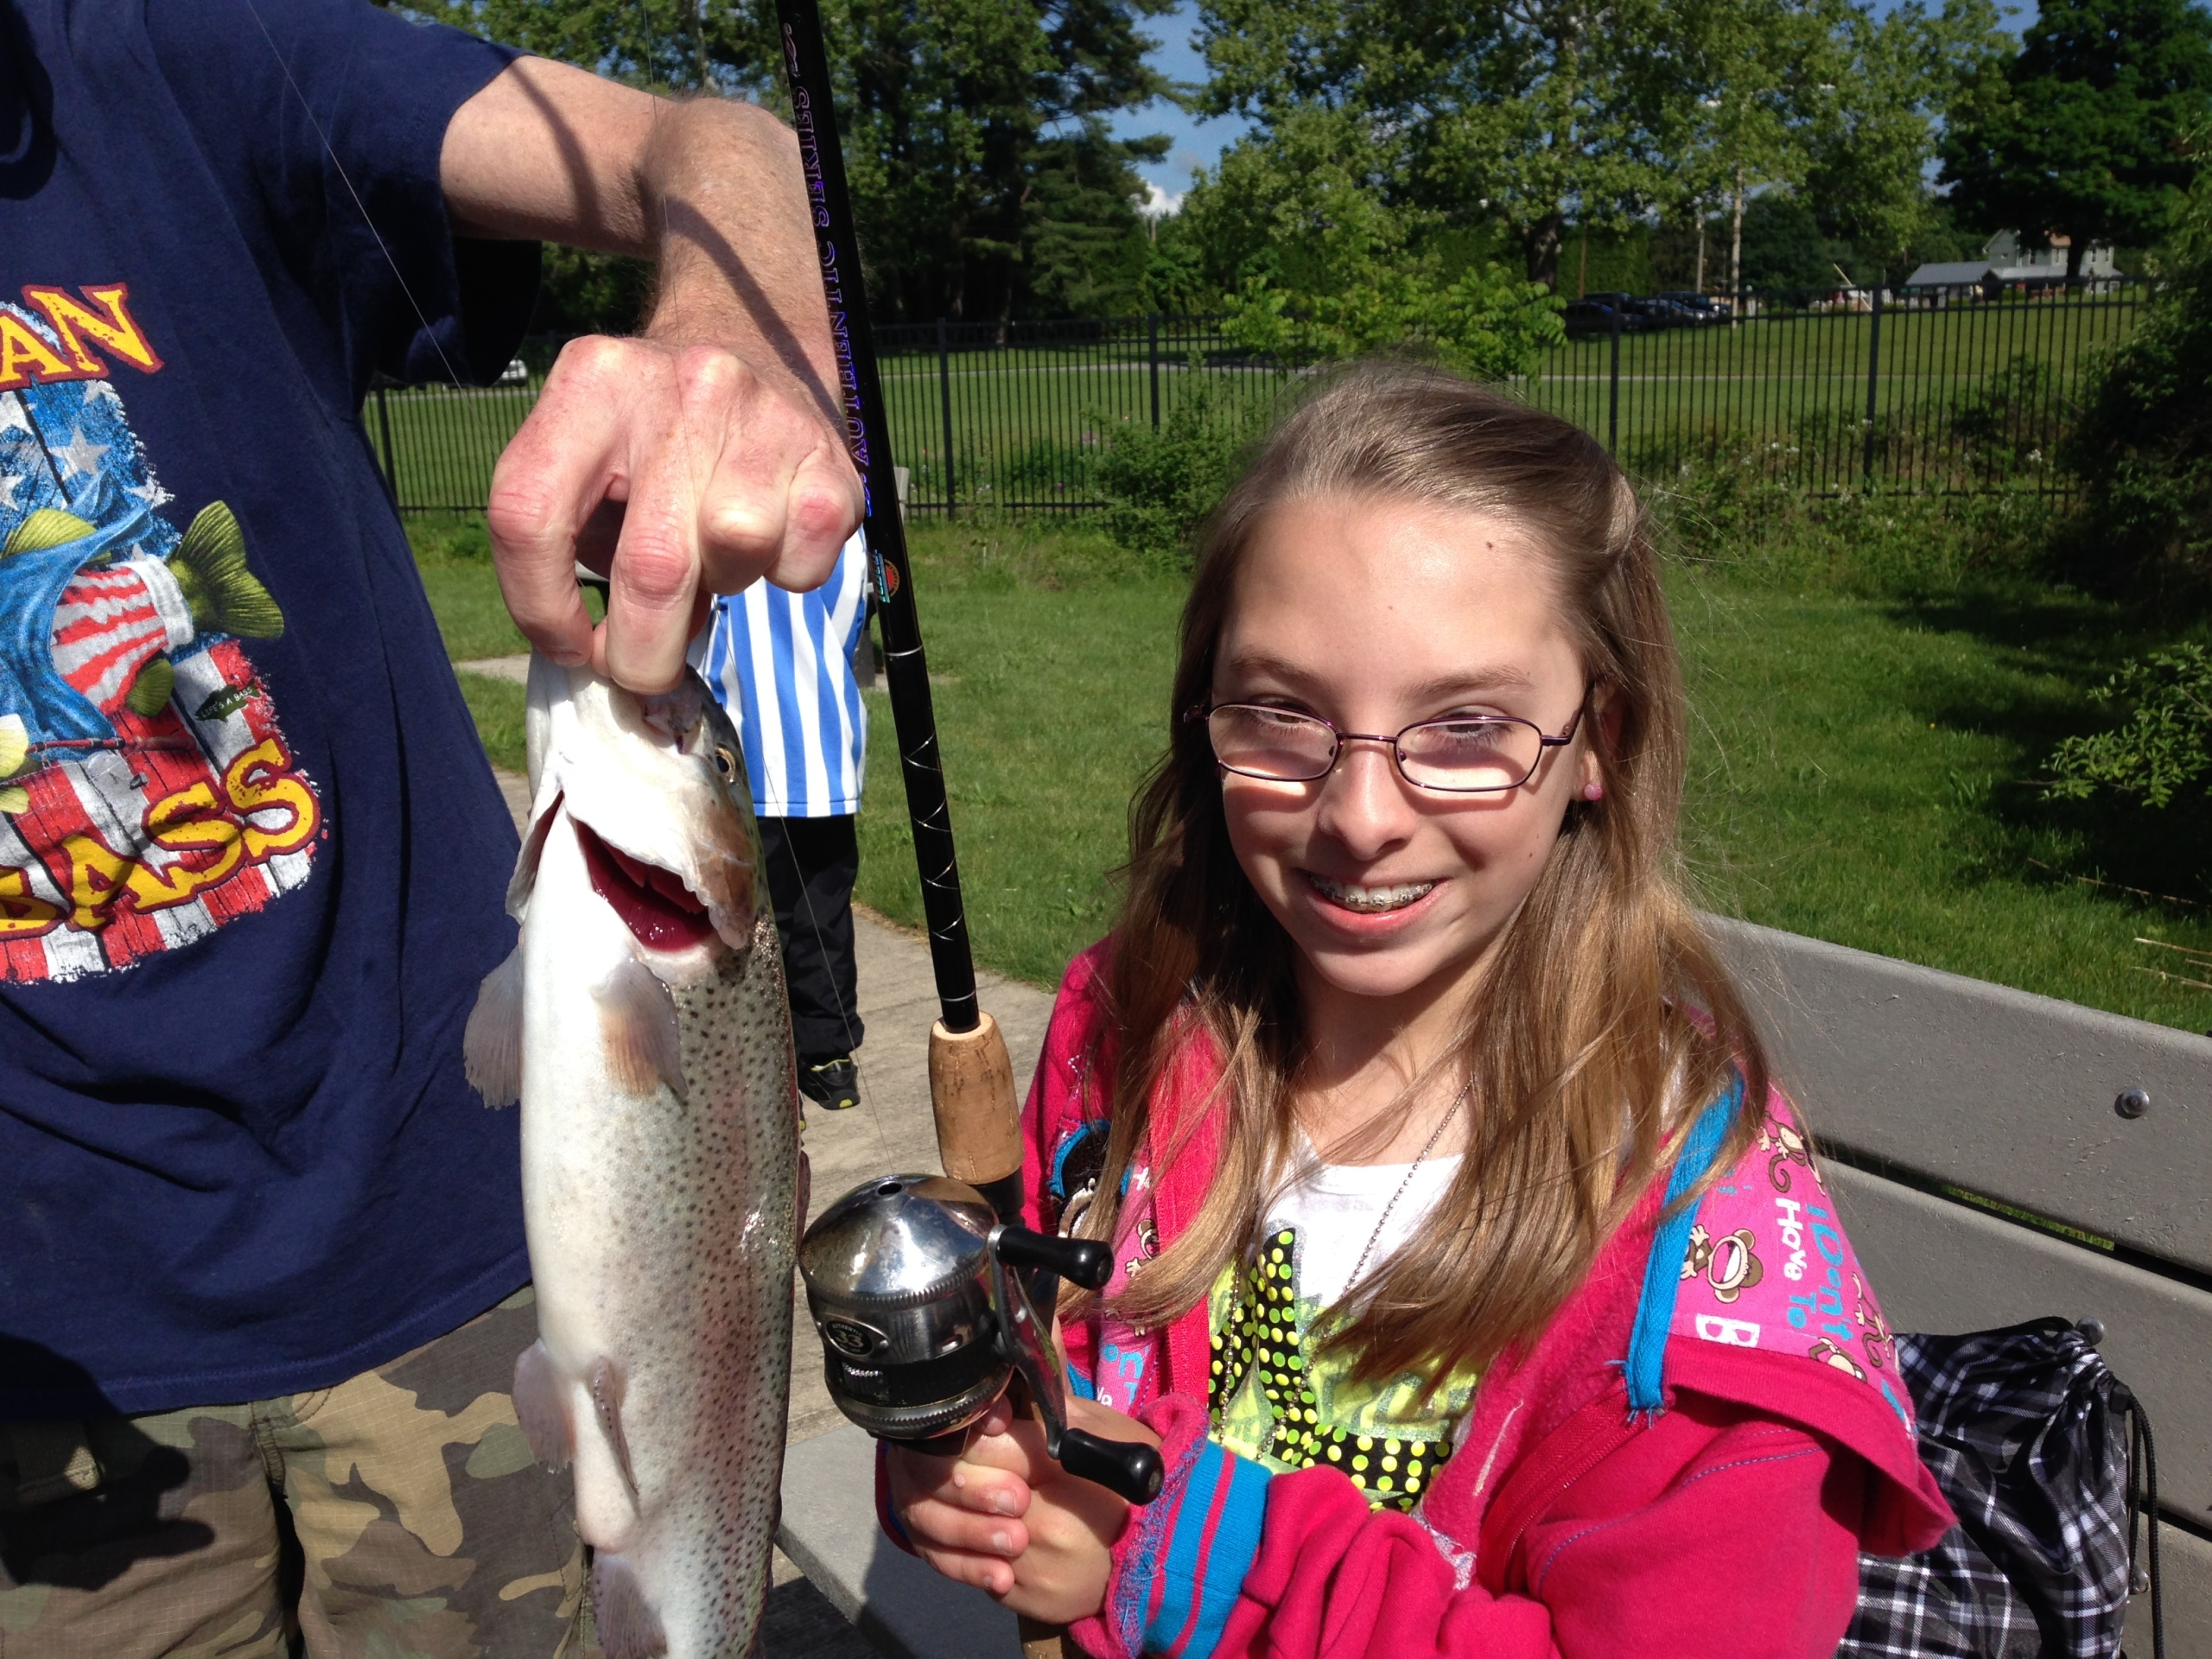 Alexa reels in a big catch at the Northeast Fishery Center Youth Fishing Derby. Credit: Catherine Gatenby/USFWS